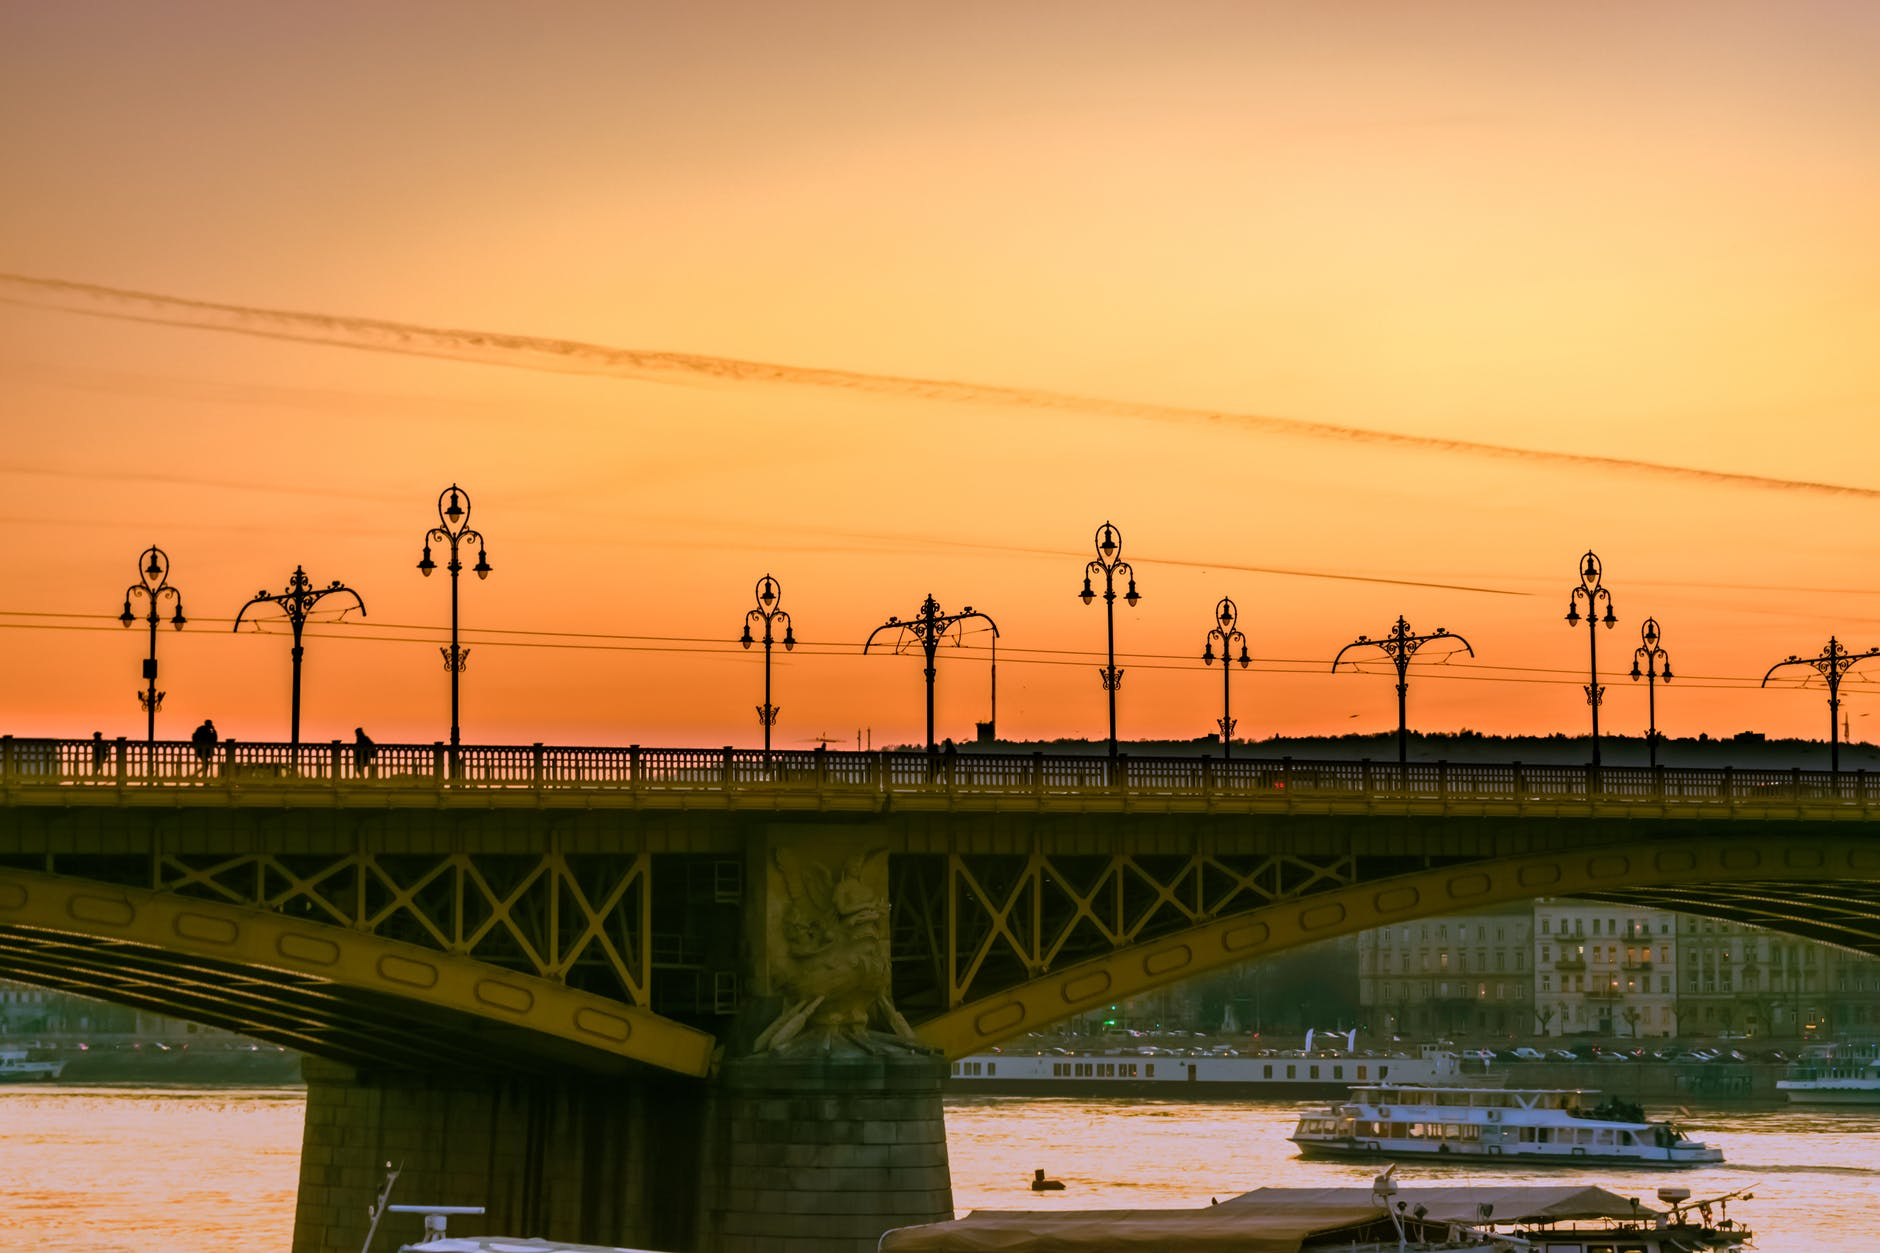 A photo of a bridge over a river at sunset, with tour boats passing under.